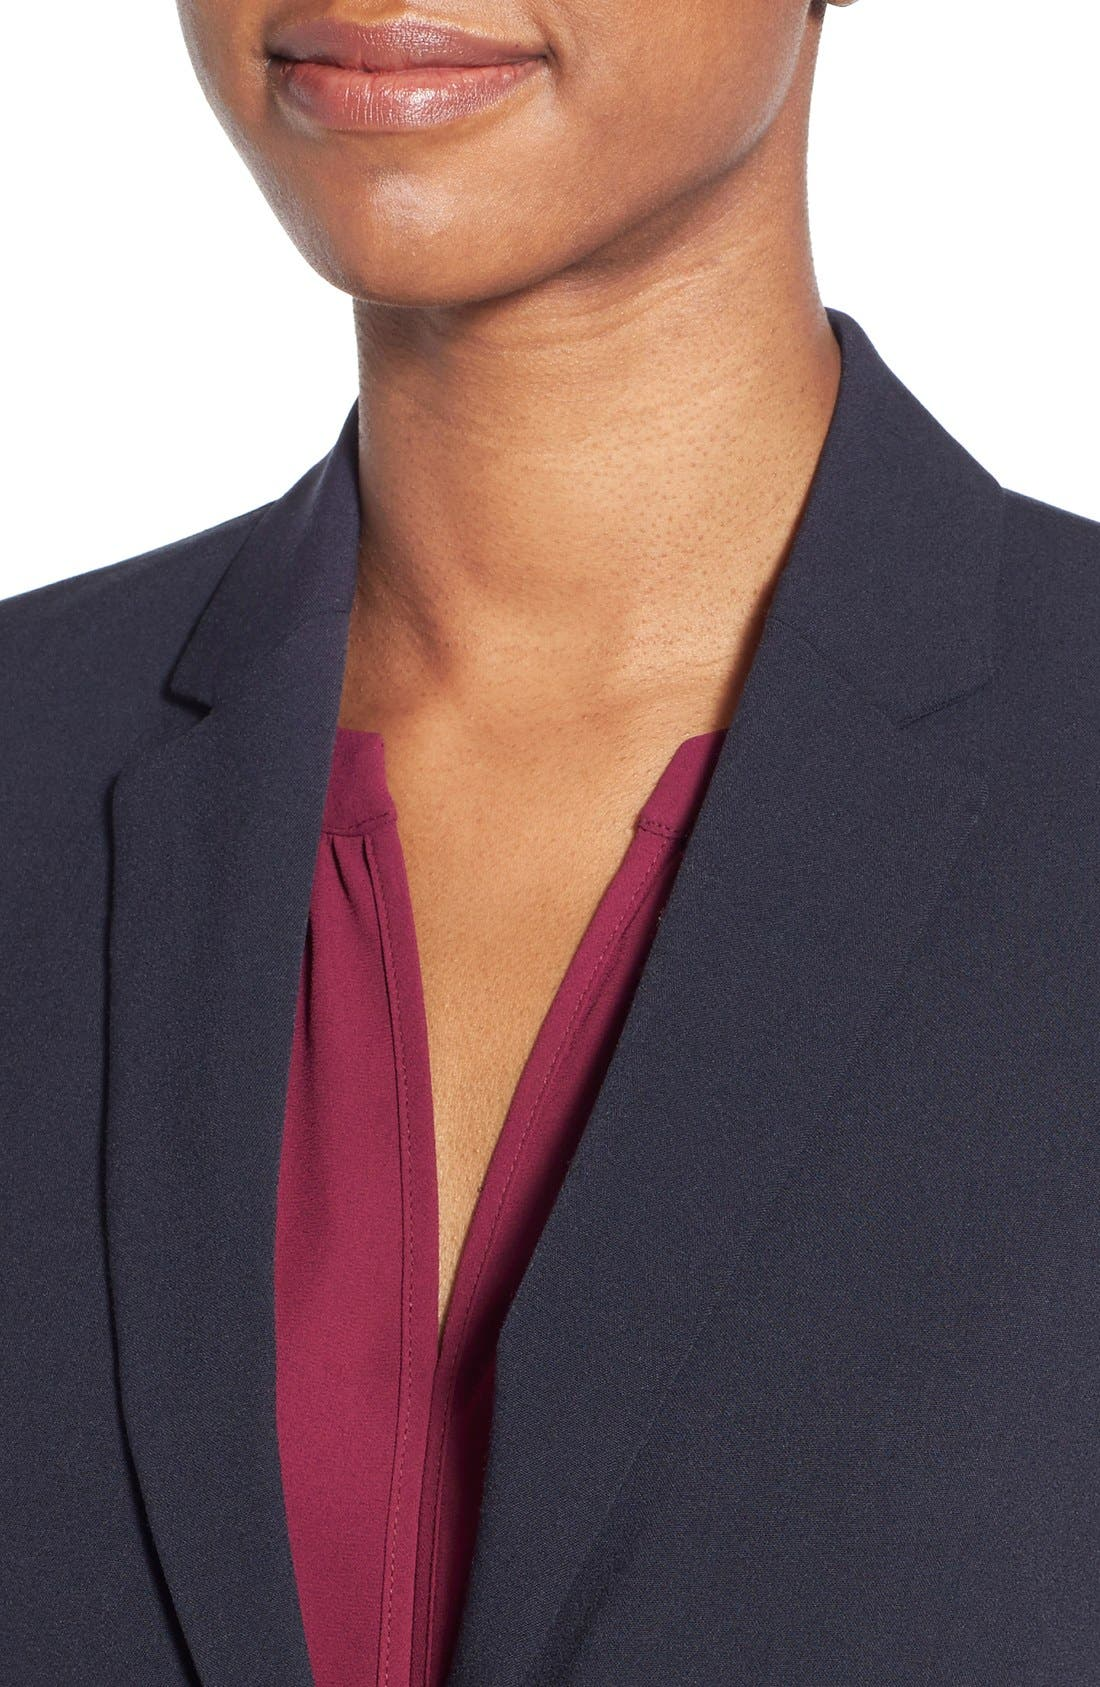 Jolie Stretch Woven Suit Jacket,                             Alternate thumbnail 5, color,                             410